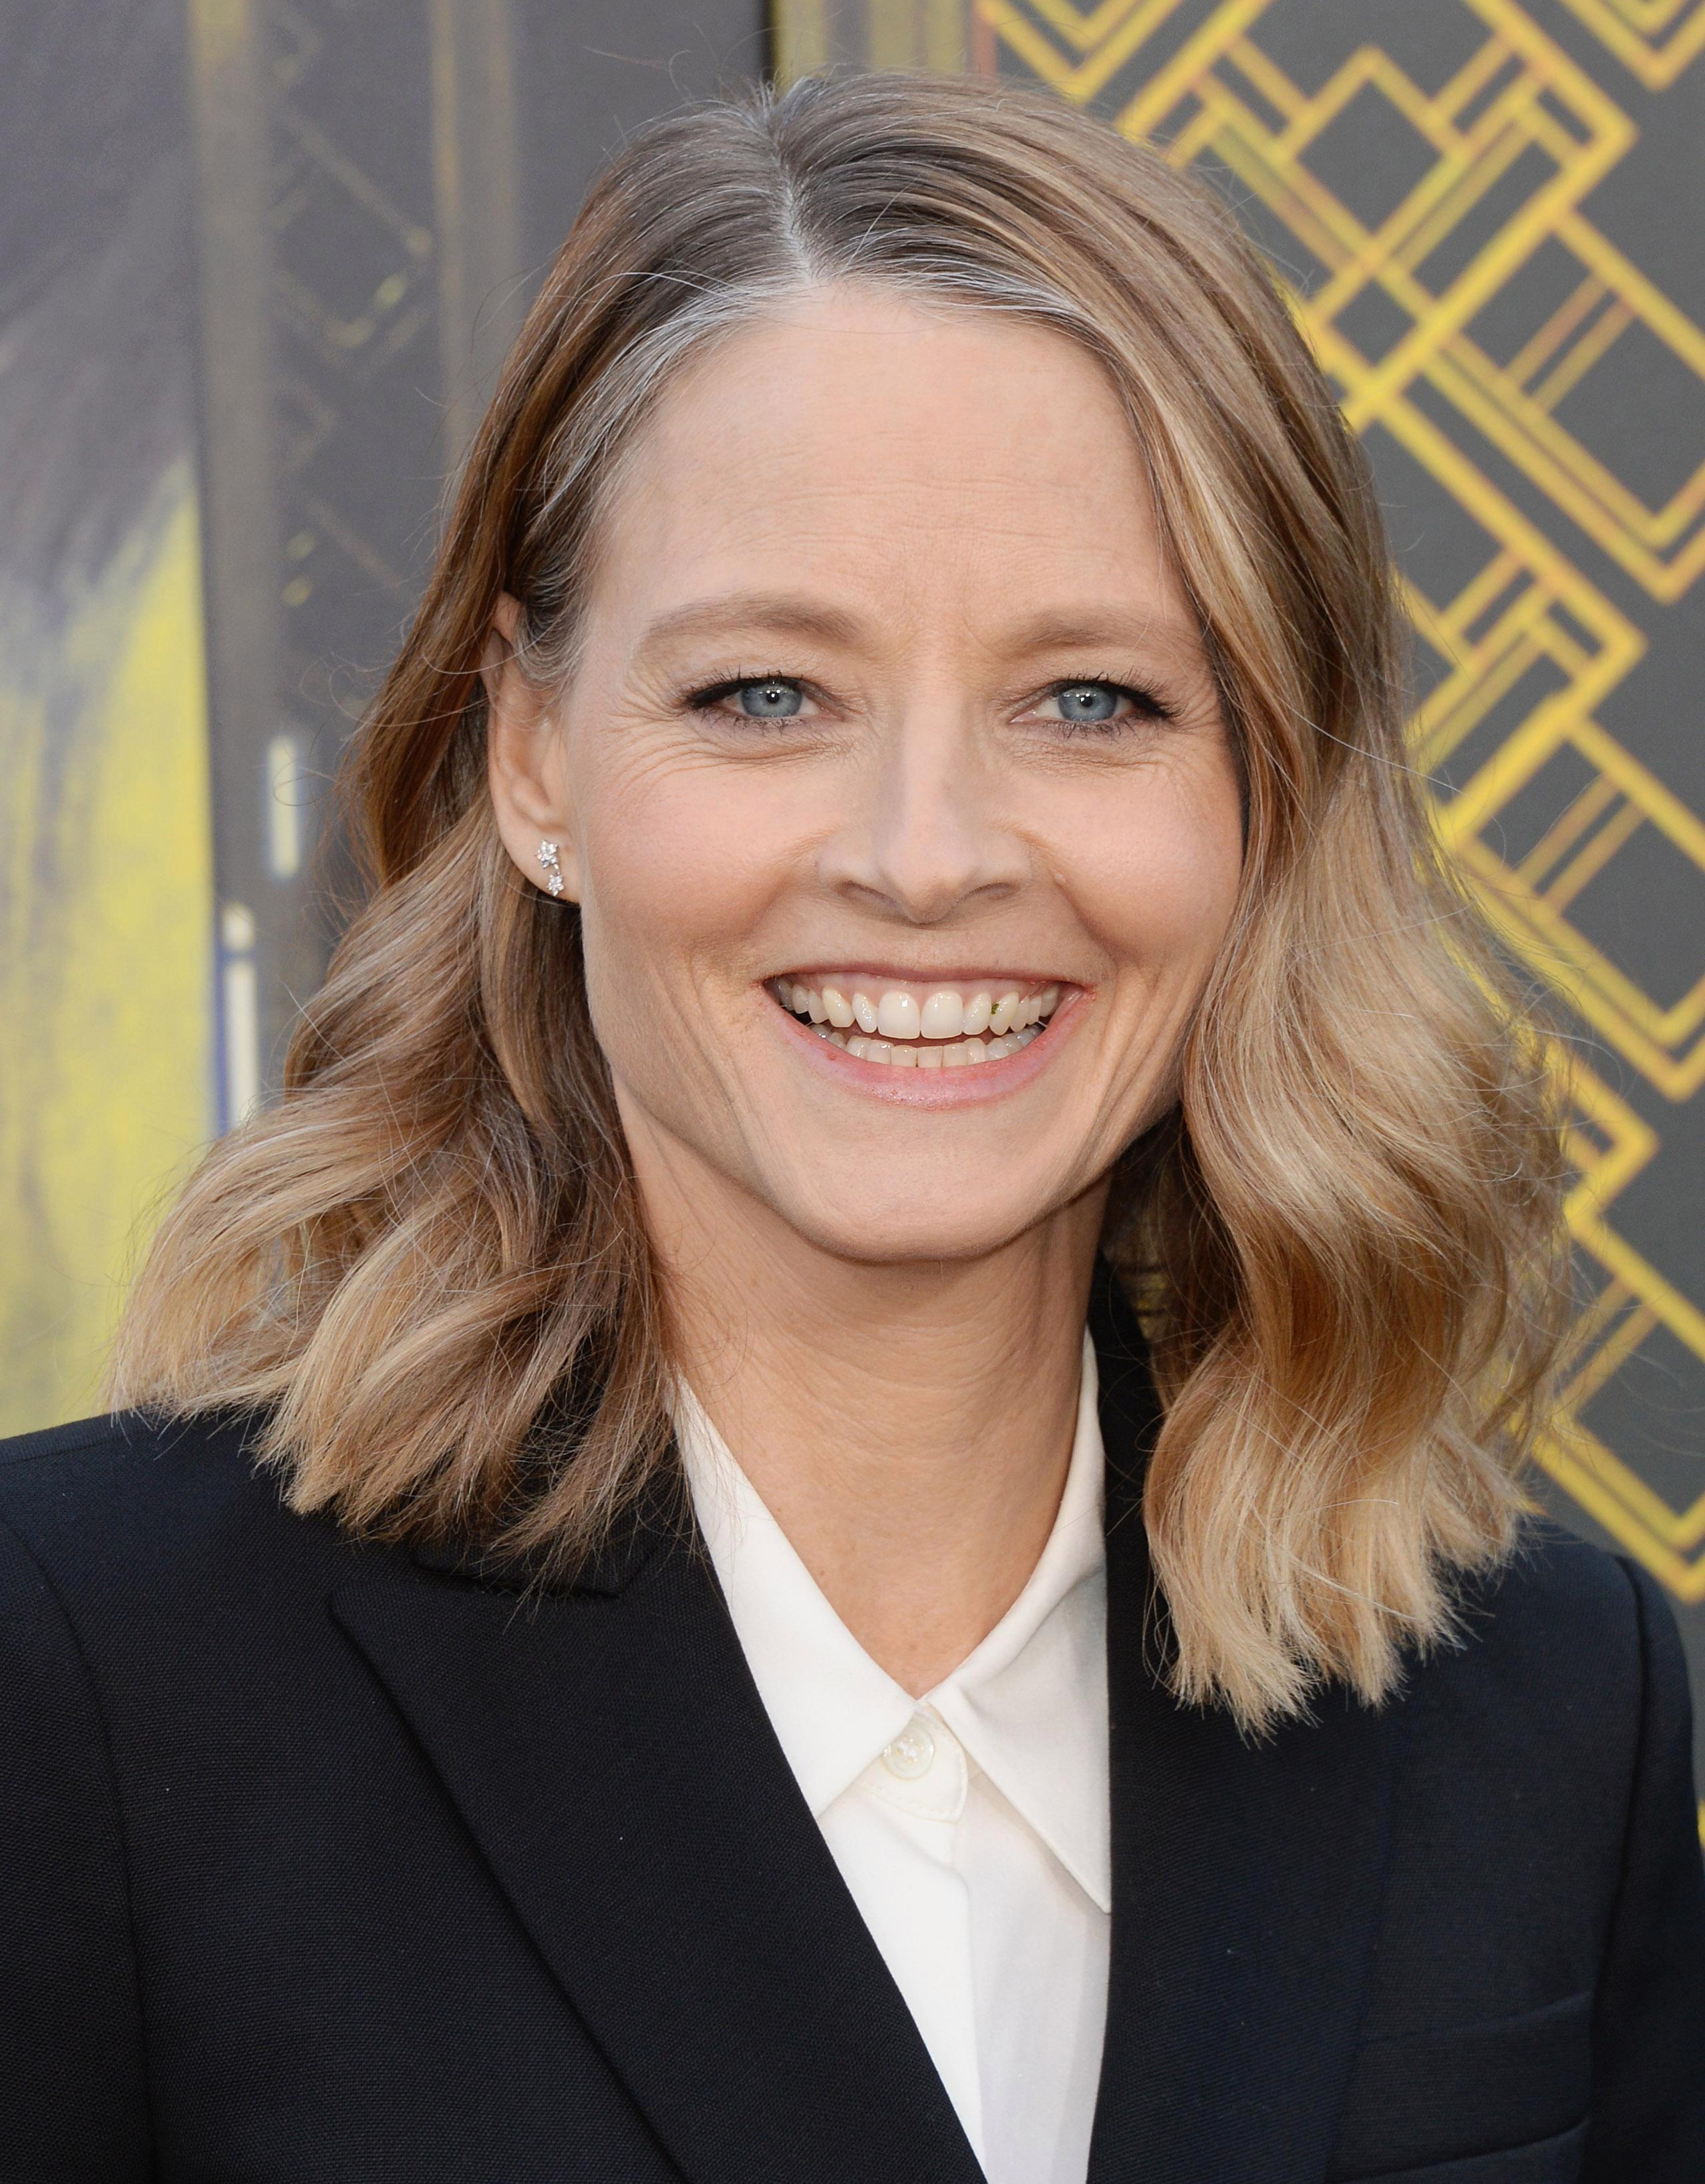 jodie foster - photo #38